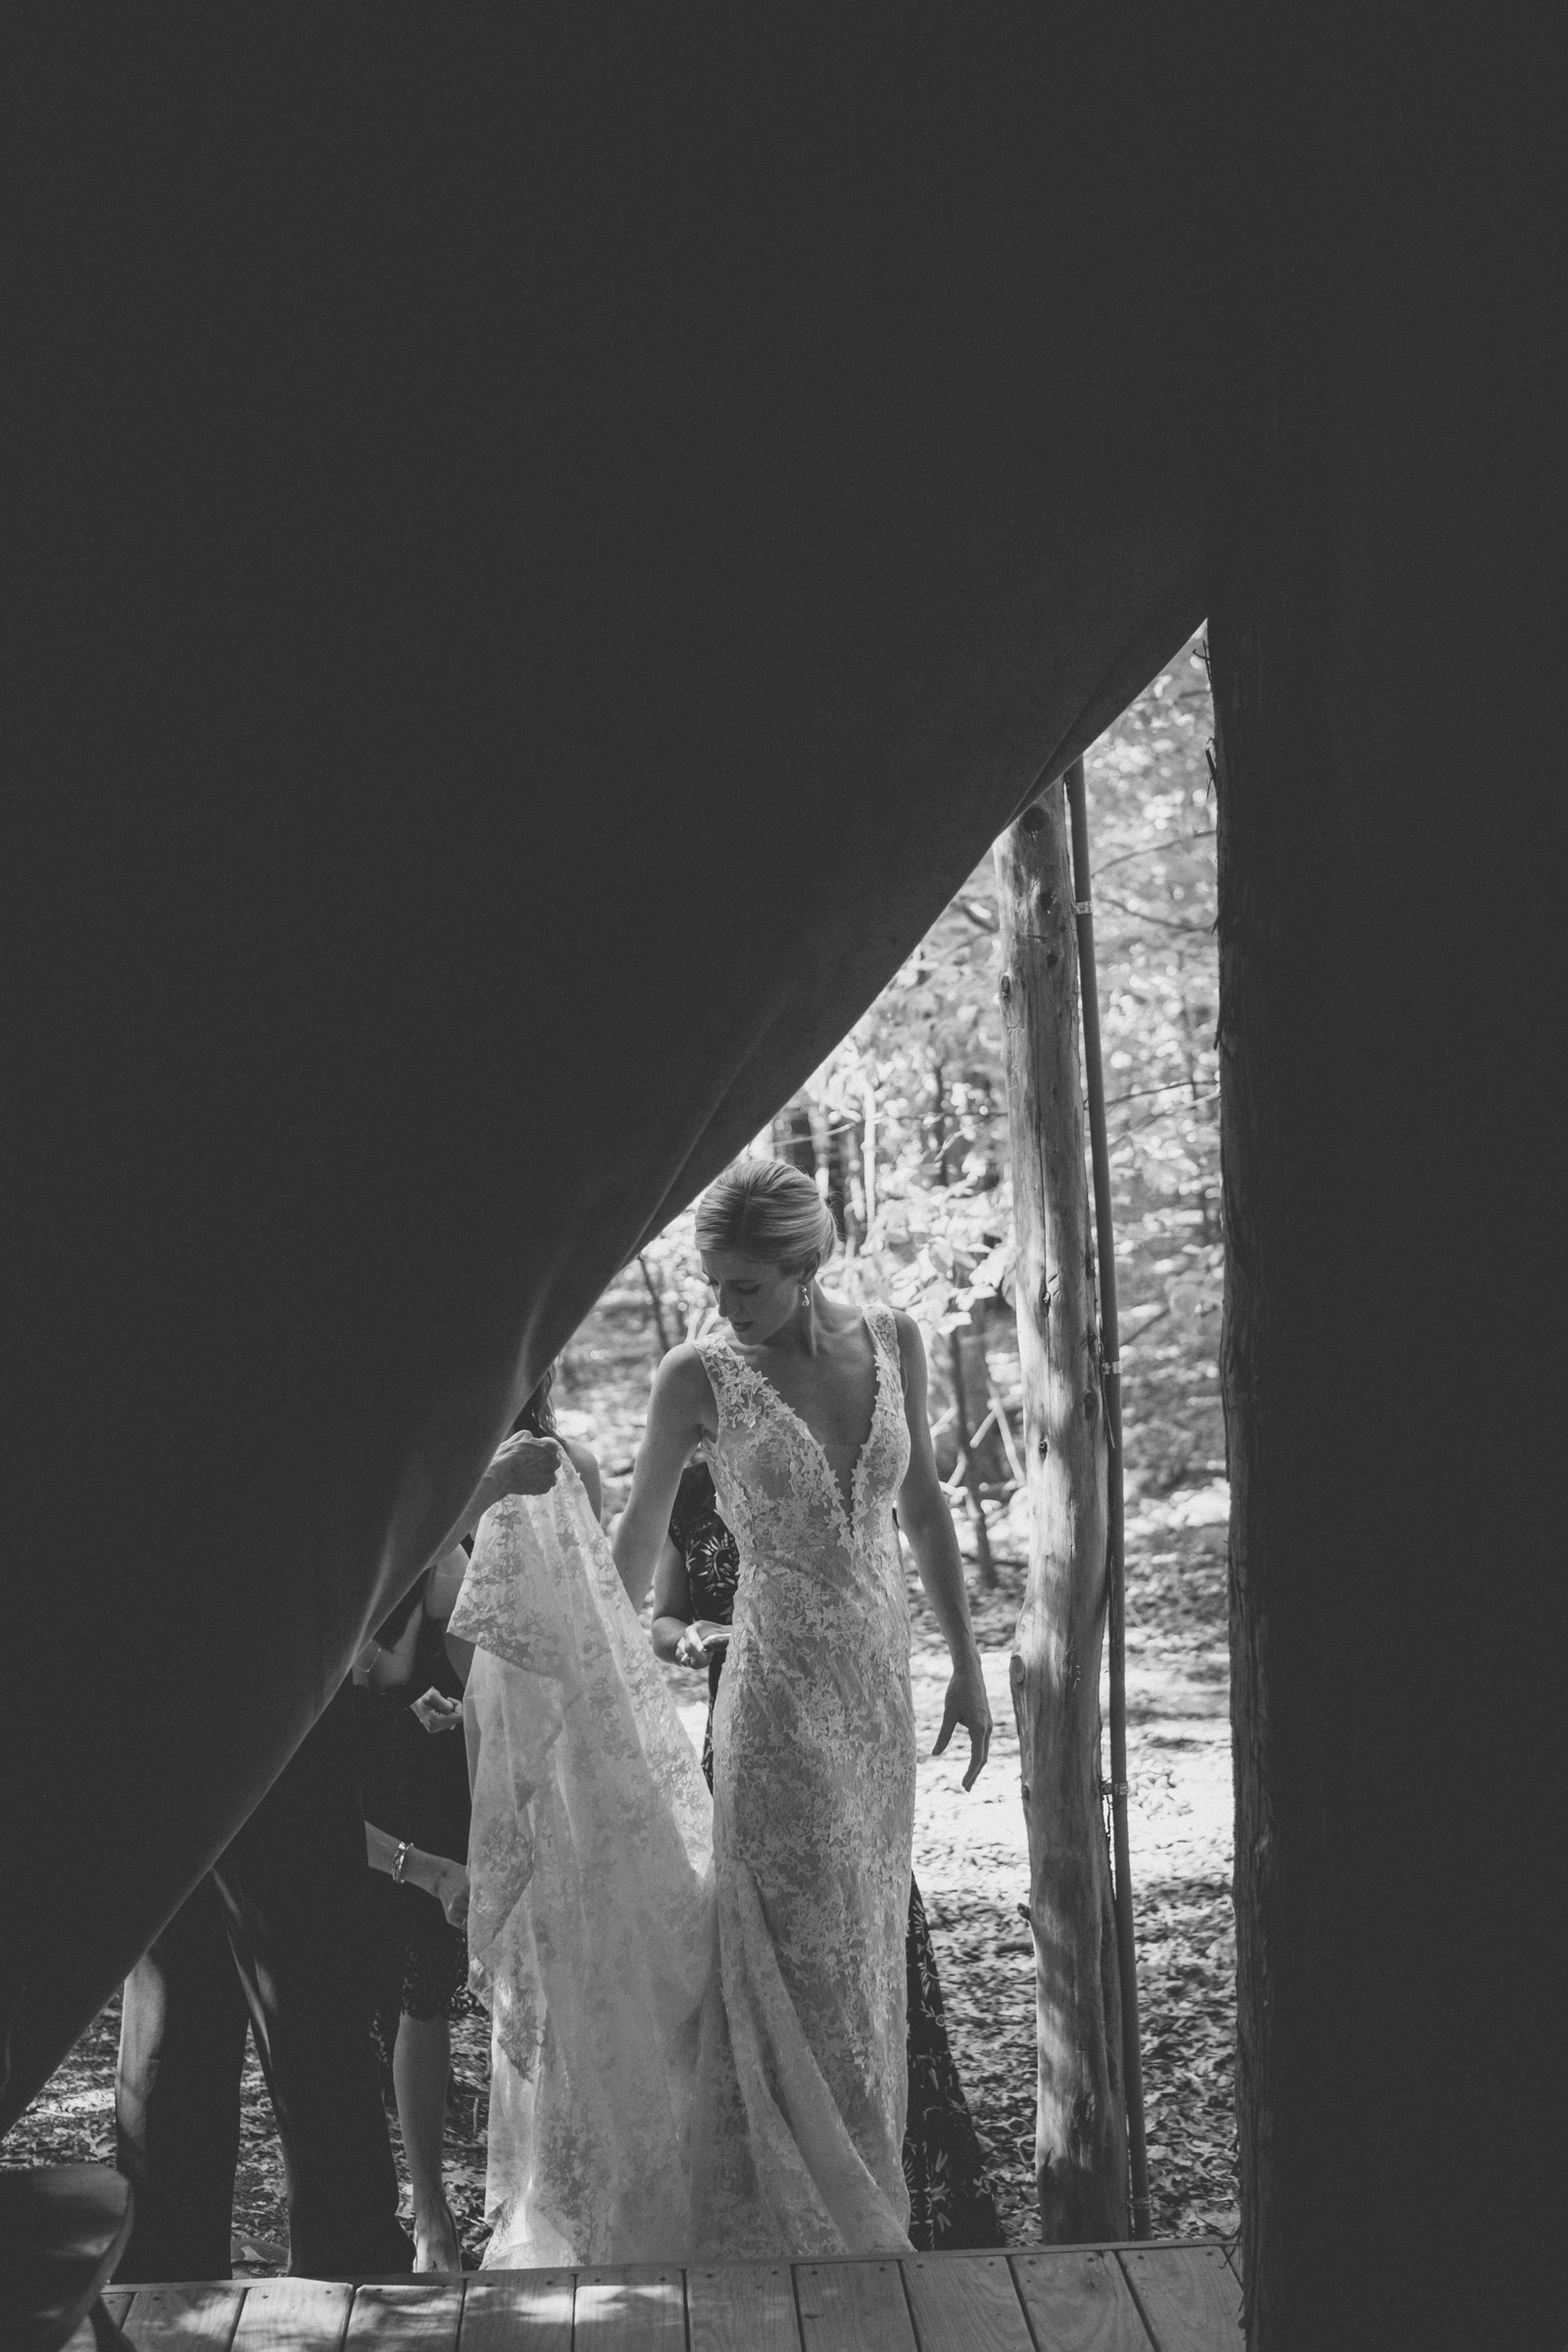 Amy Sims Photography | Bride picks up the train of her dress framed in a dark tent opening | Emmerich Tree Farm Wedding | black and white photography | Hudson Valley Wedding Photographer | black and white wedding photography